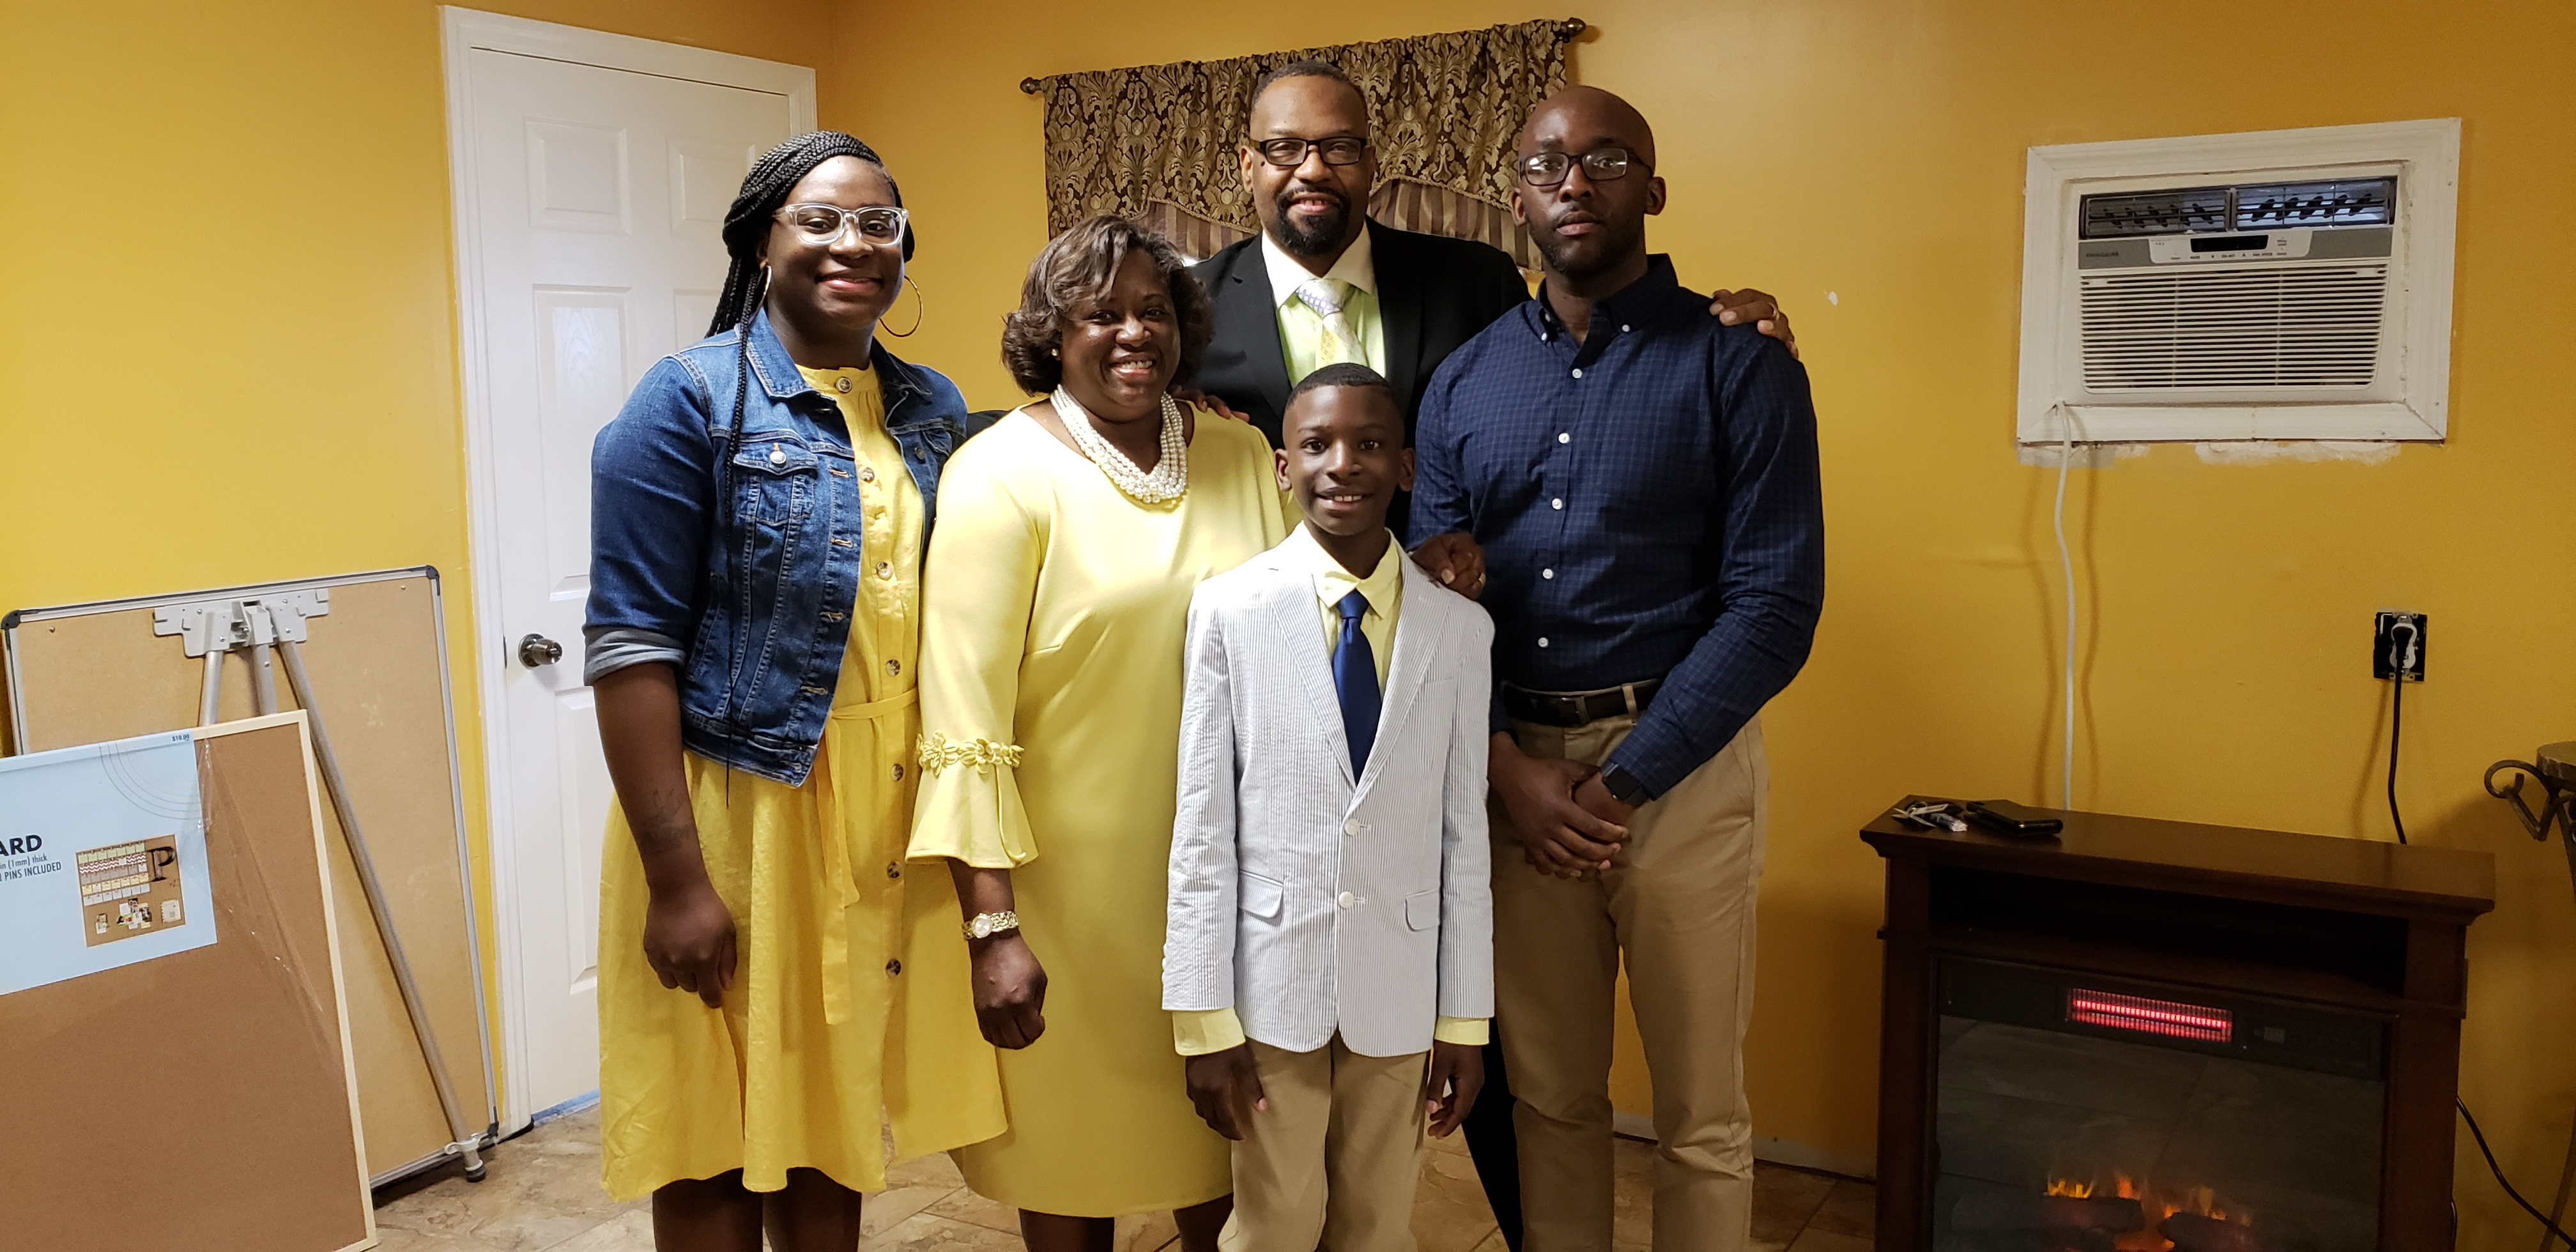 South Carolina Pastor Seeking New Kidney After Damage Caused by Diabetes and Recent Bout With Coronavirus and Pneumonia